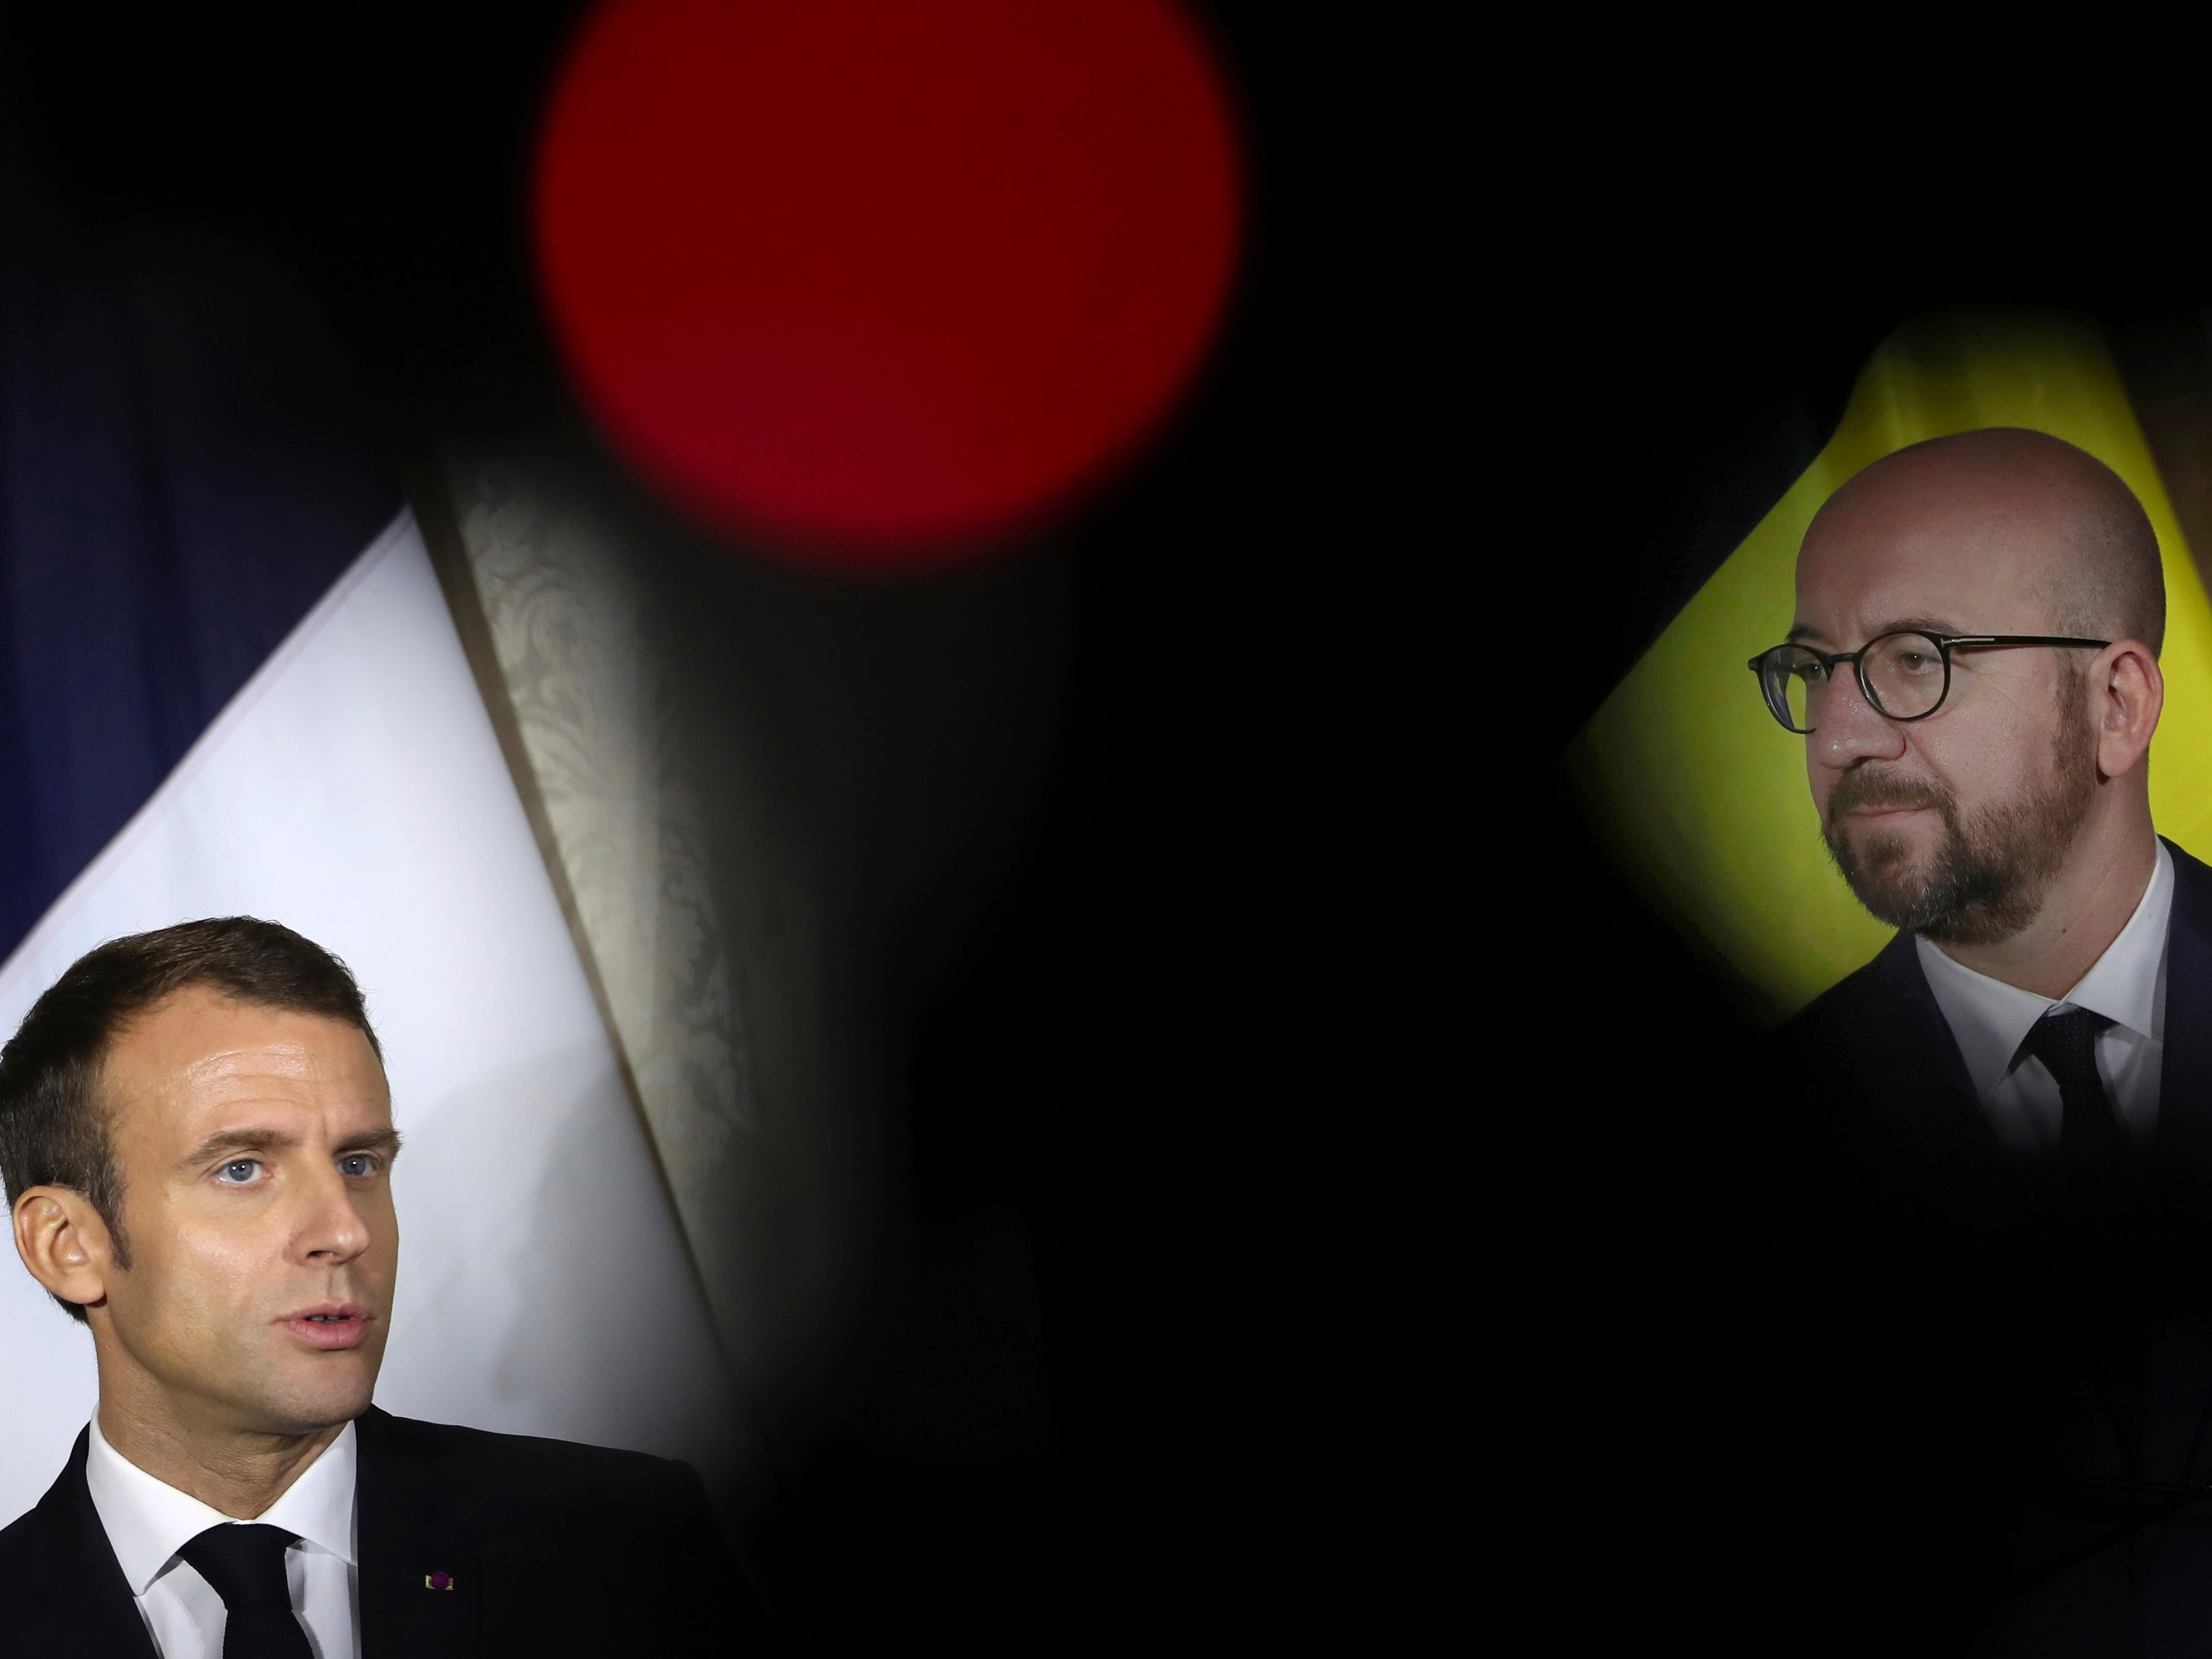 French President Emmanuel Macron, left, talks to journalists during a joint news conference with Belgian Prime Minister Charles Michel, right, following their meeting at the Egmont Palace in Brussels, Monday, Nov. 19, 2018. President Macron and the first lady are on a two day state visit to Belgium.